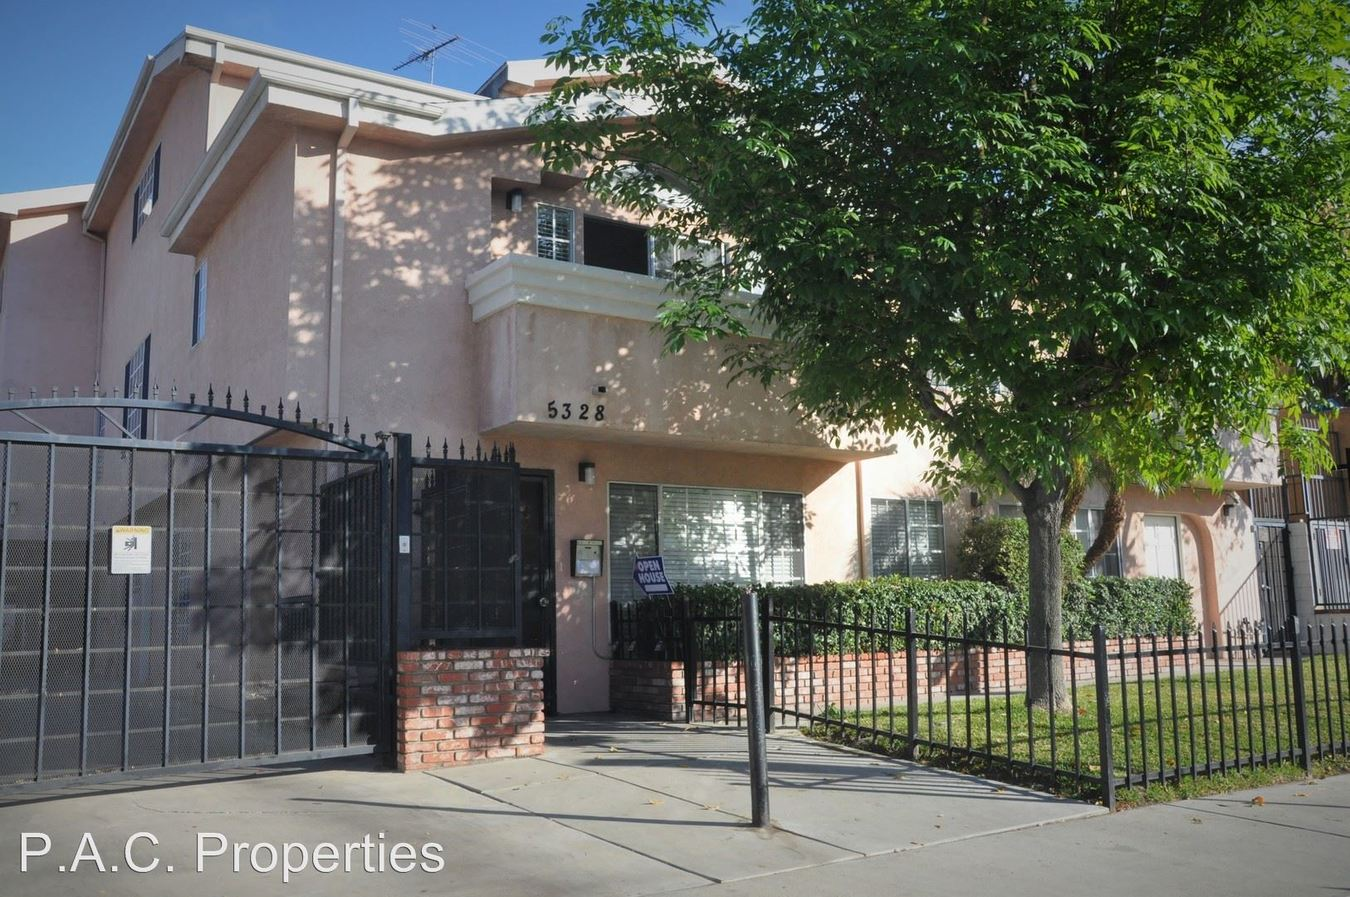 3 Bedrooms 2 Bathrooms Apartment for rent at 5328 Riverton Avenue in North Hollywood, CA